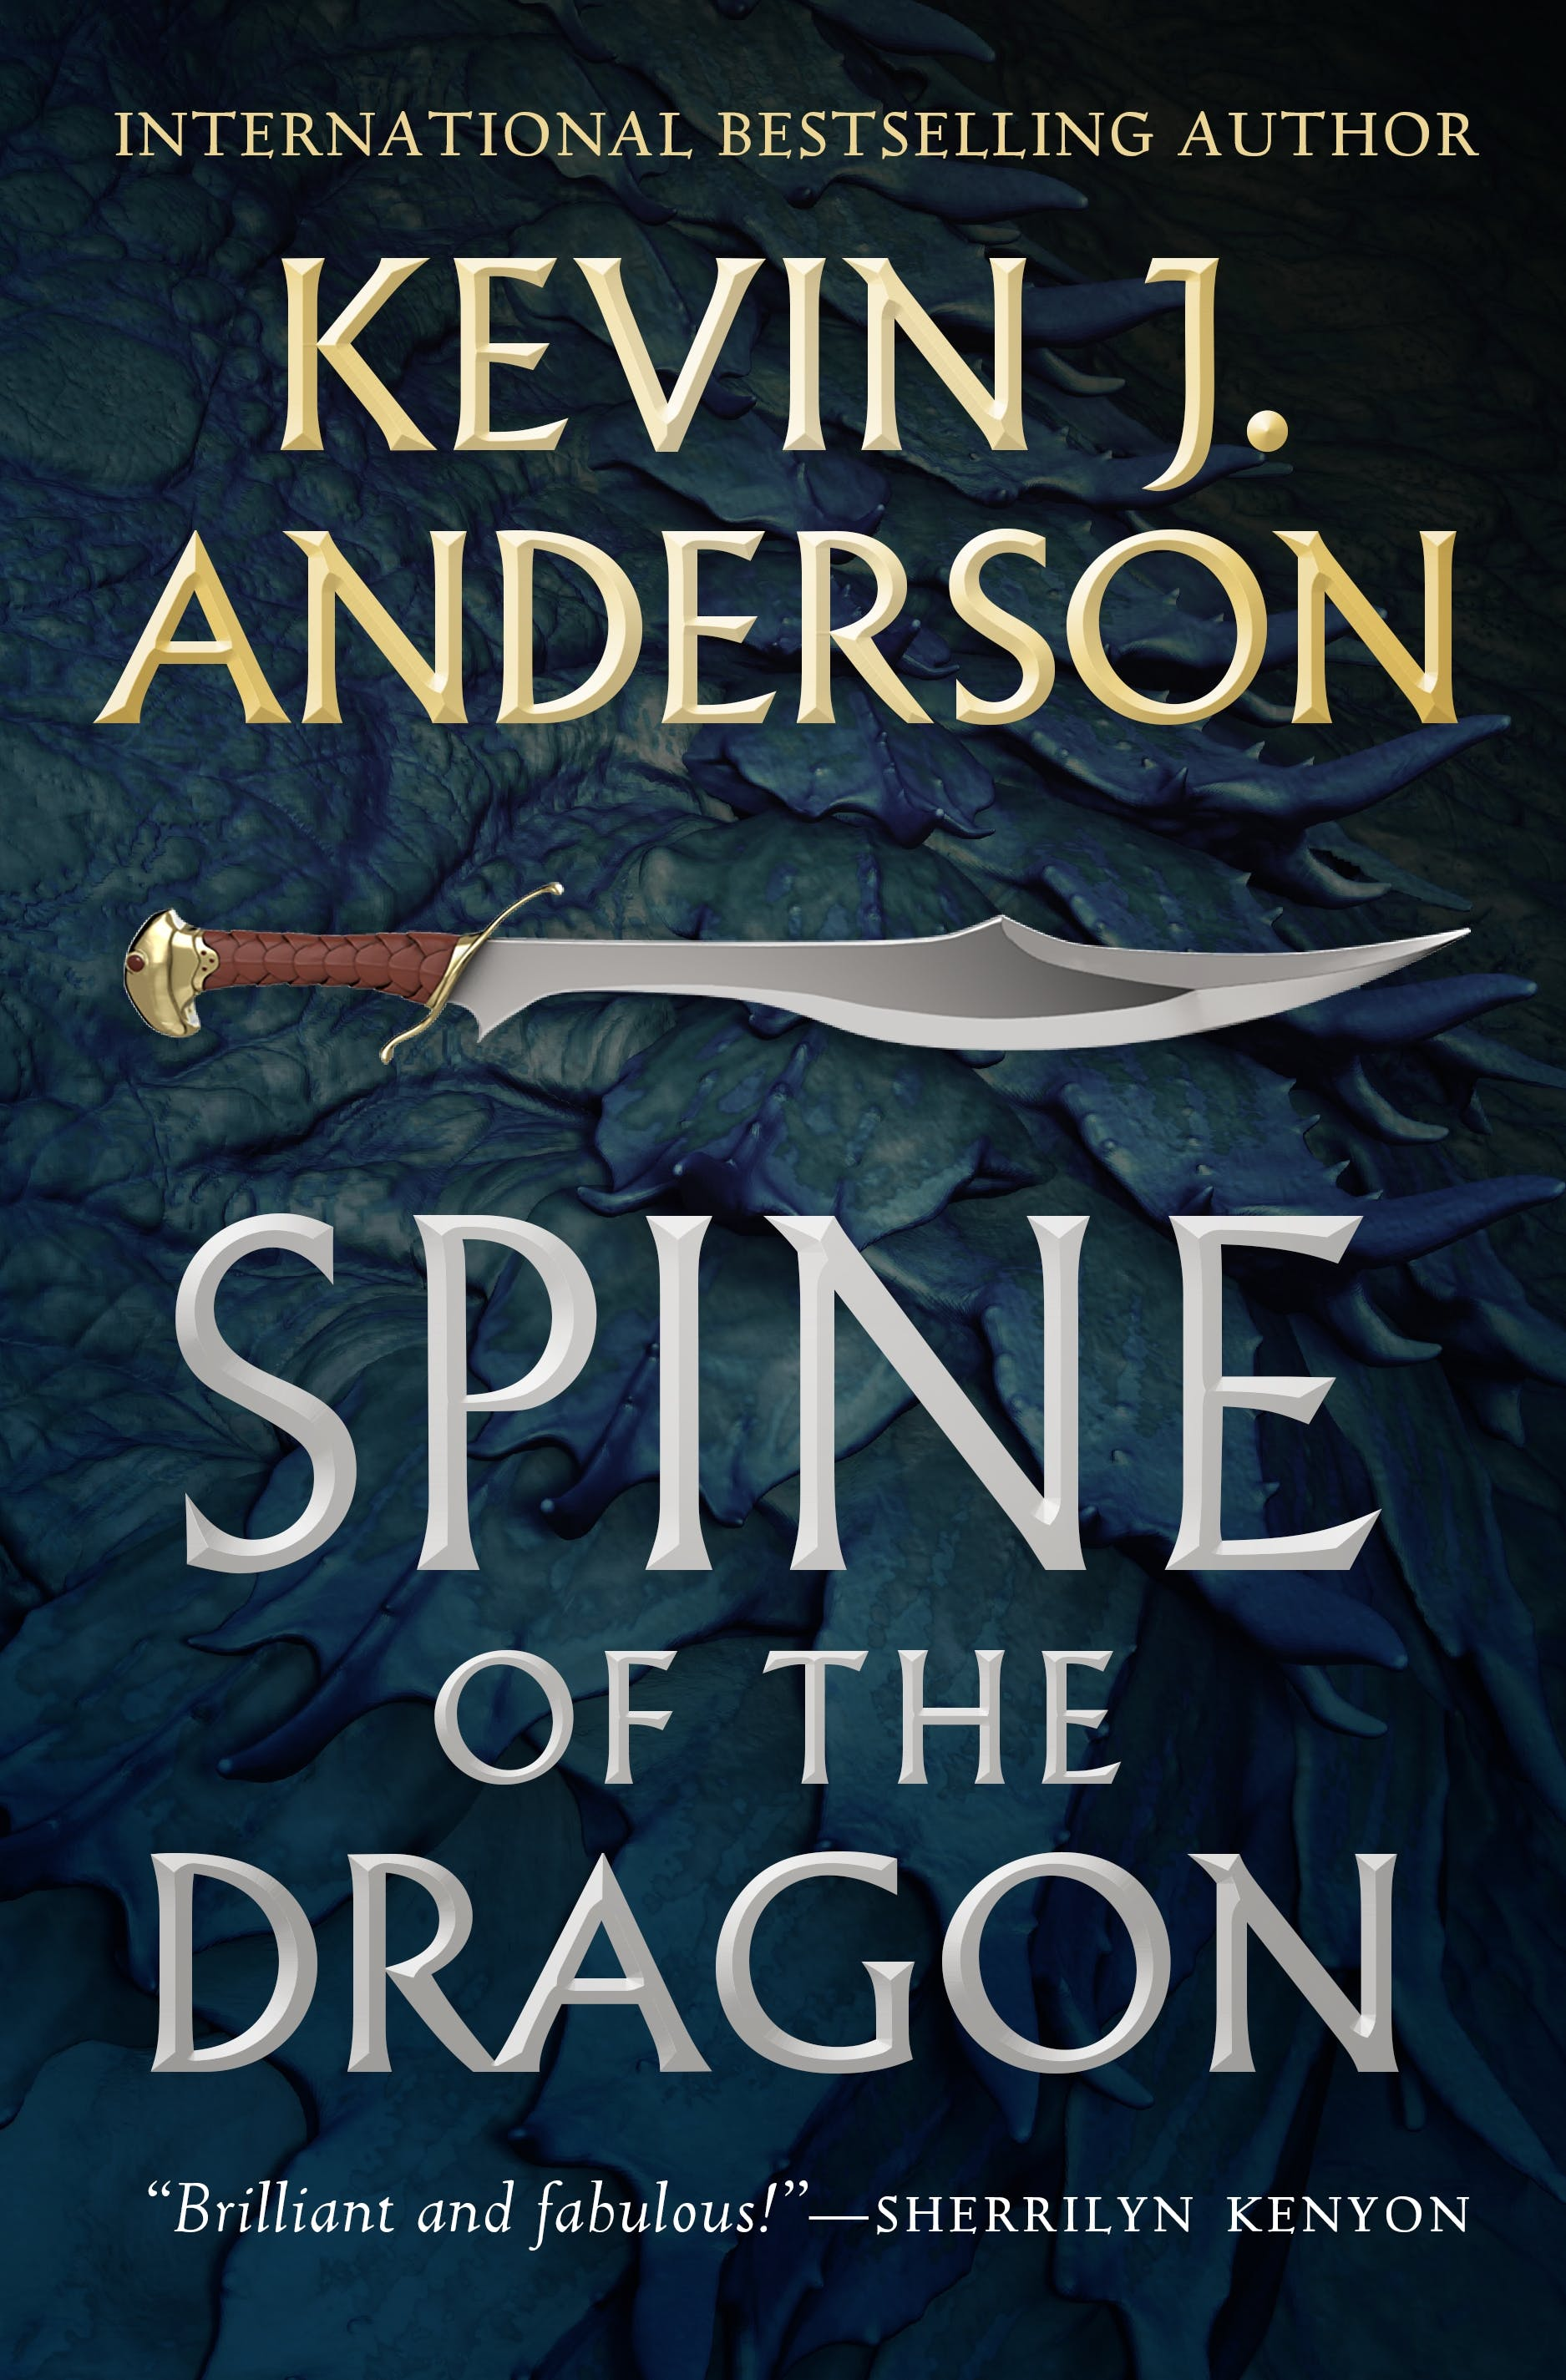 Image of Spine of the Dragon